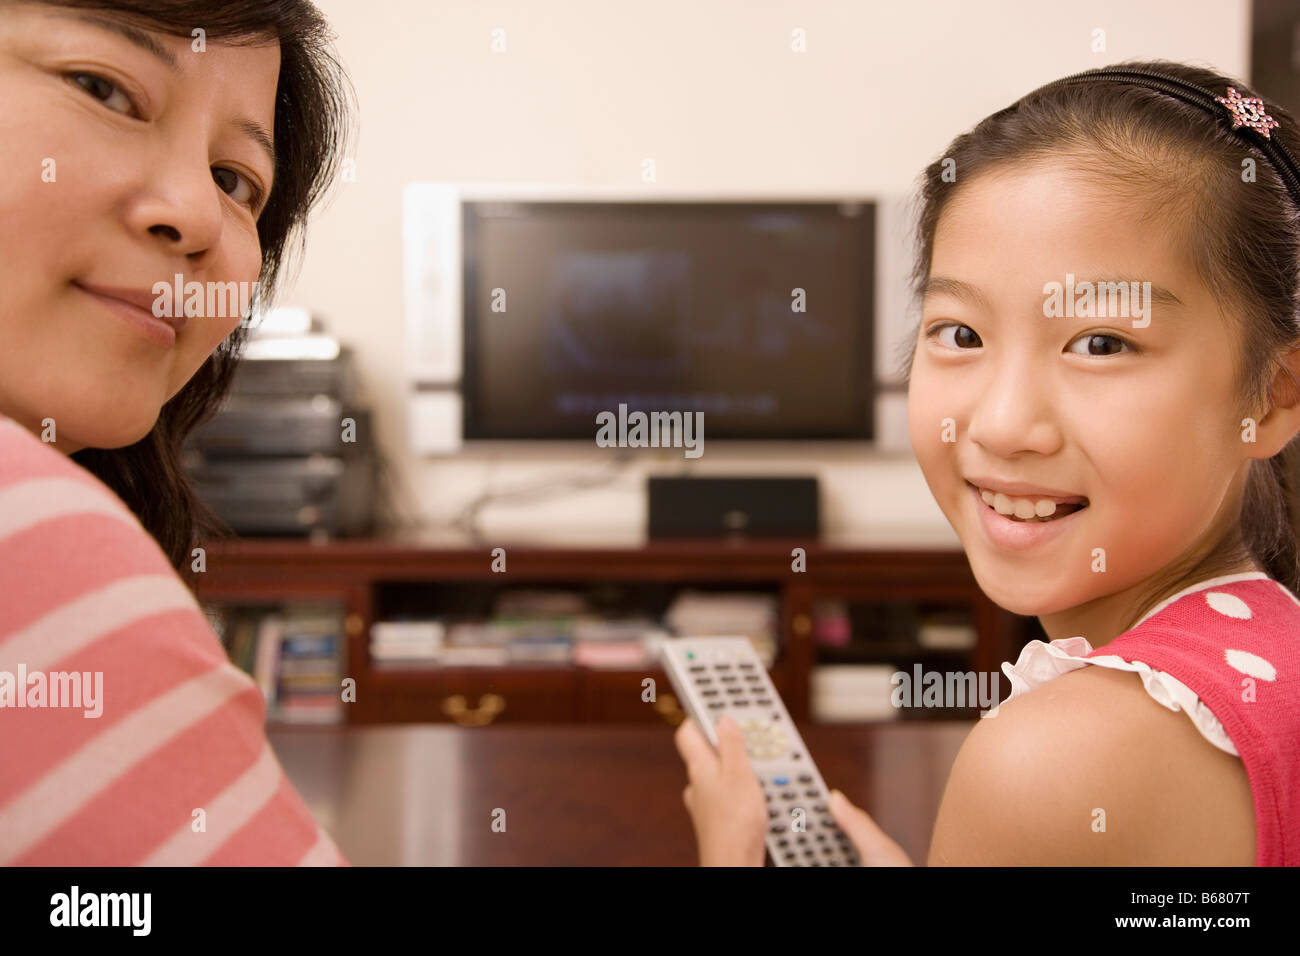 Portrait of a girl holding a remote control and smiling with her mother - Stock Image